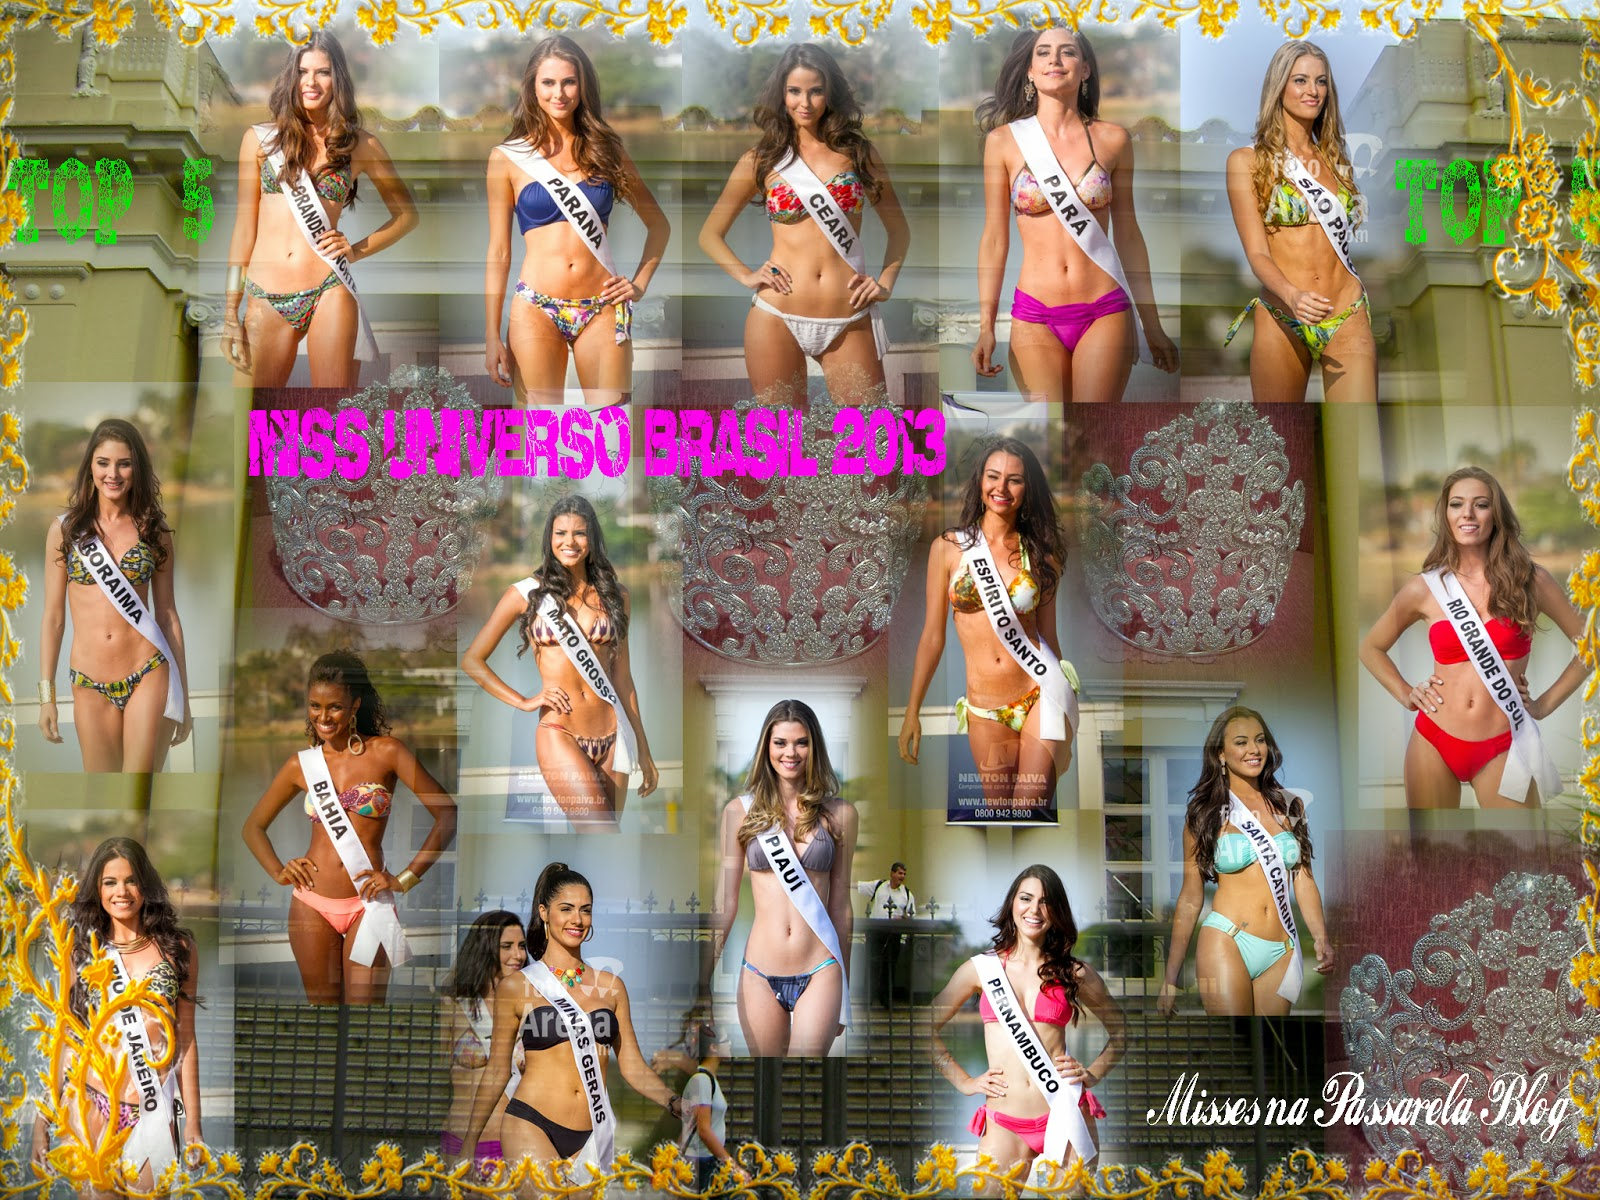 Miss universo 2013 completo online dating 8